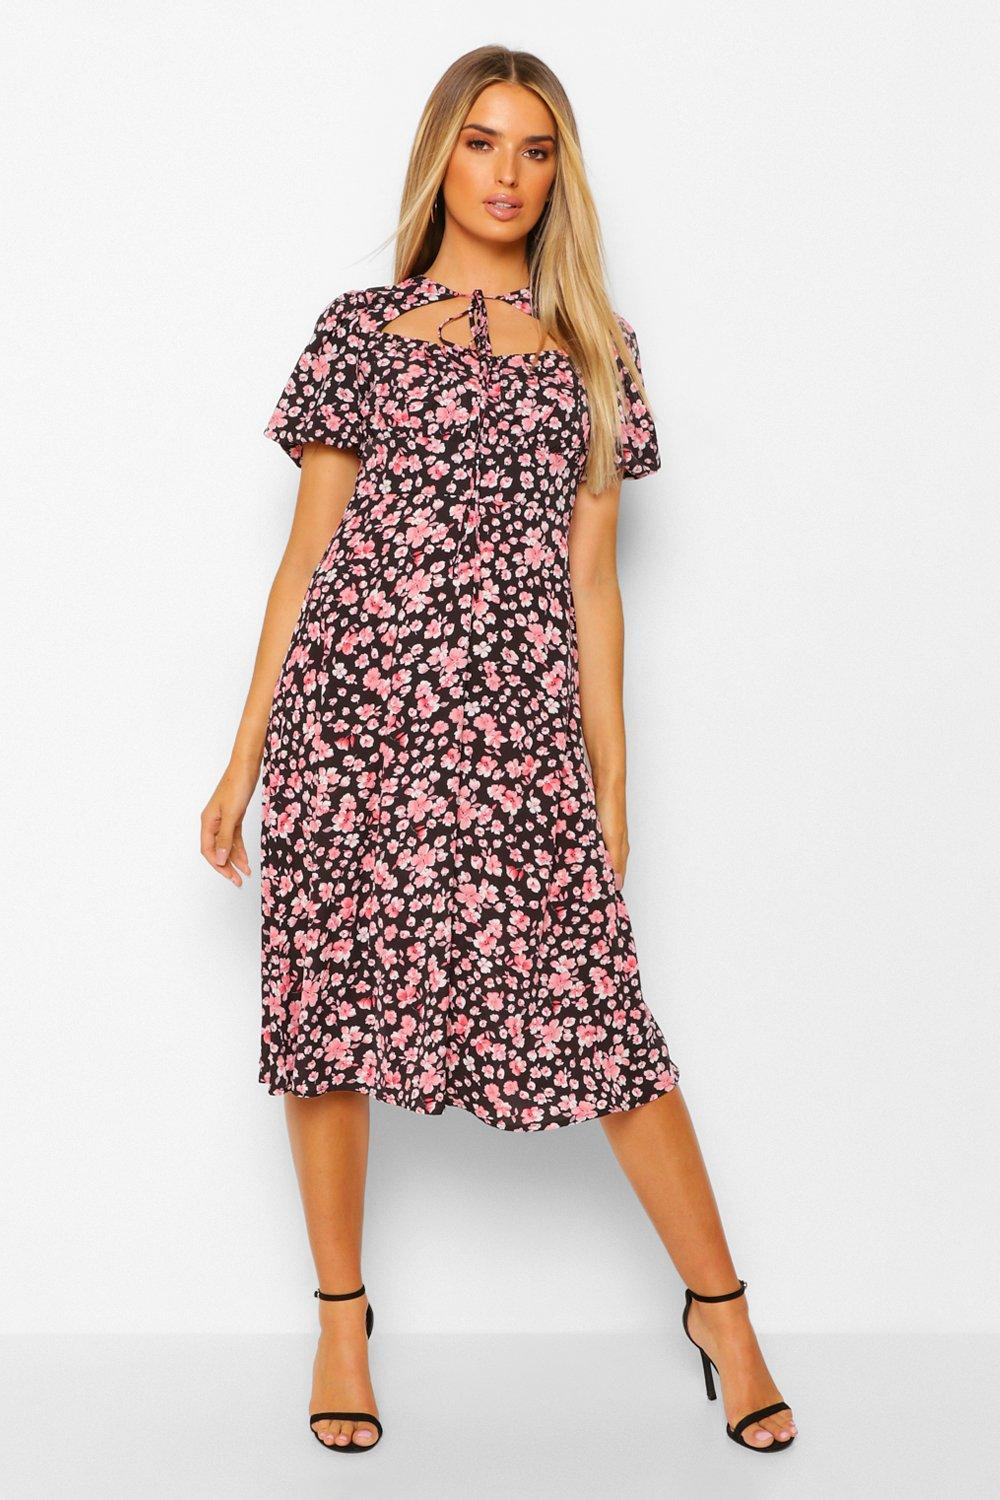 DRESSES Floral Rouched Bust Cut Out Midi Dress